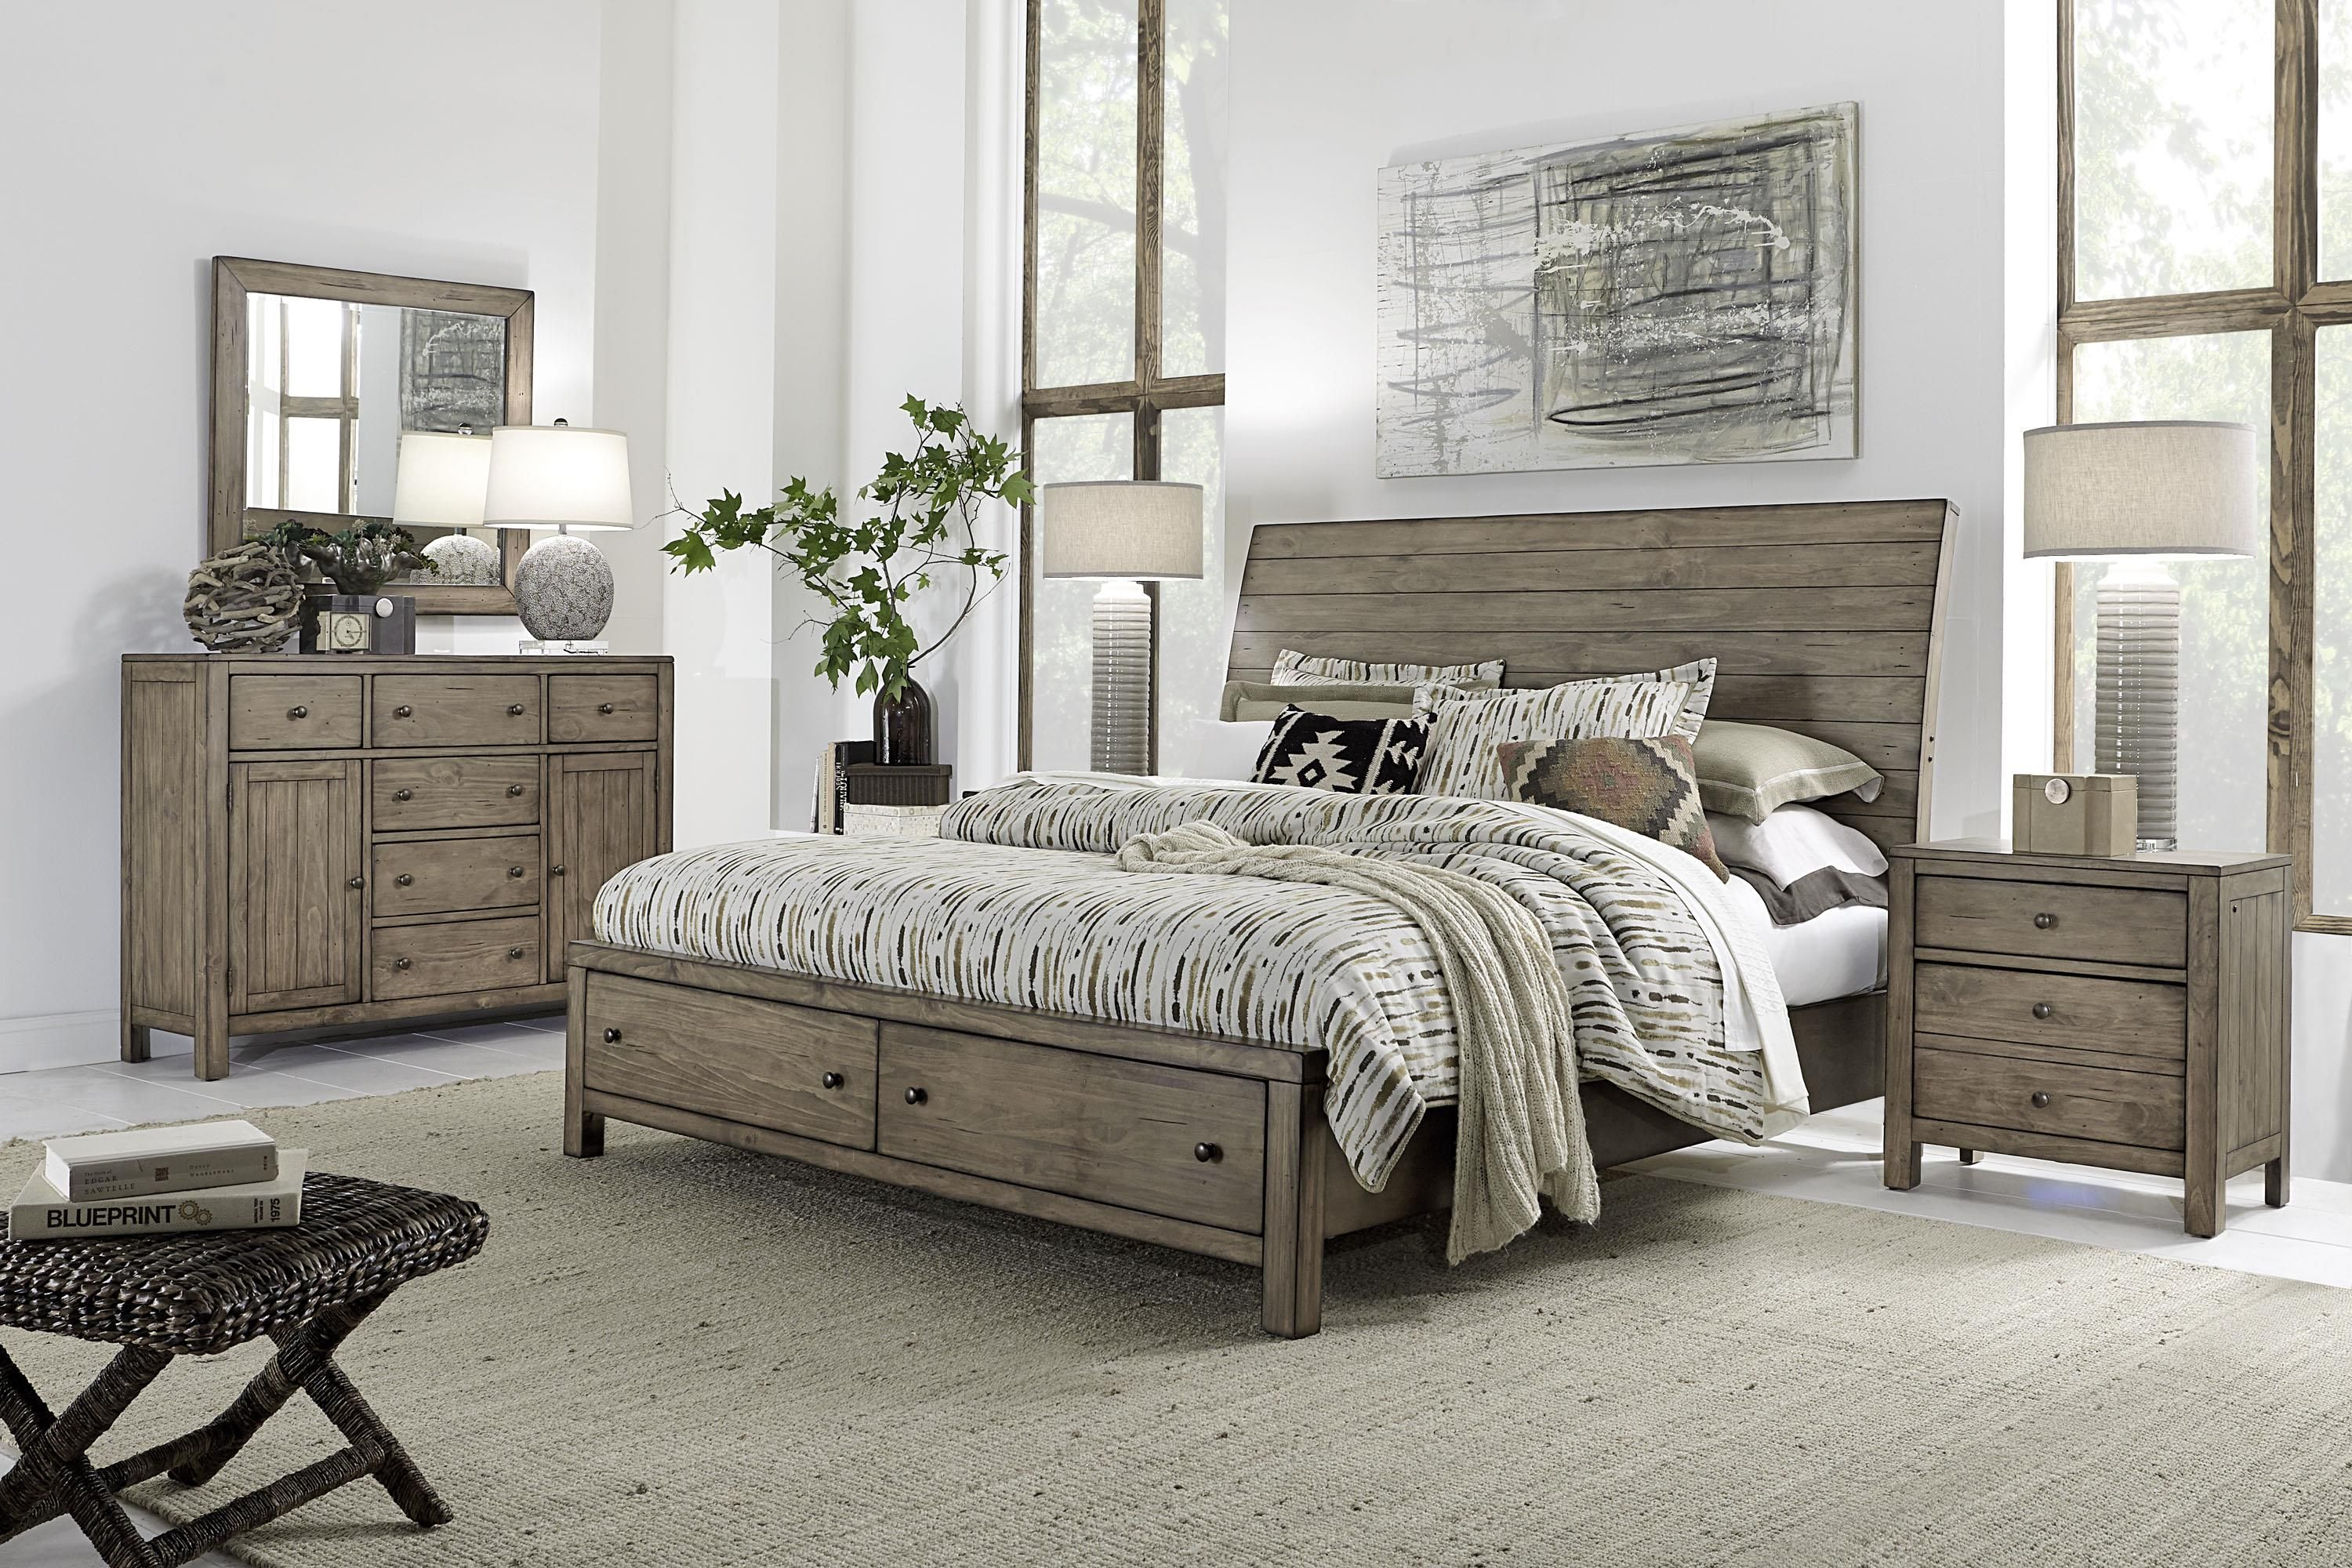 Aspenhome Tildon King Bedroom Group Becker Furniture World